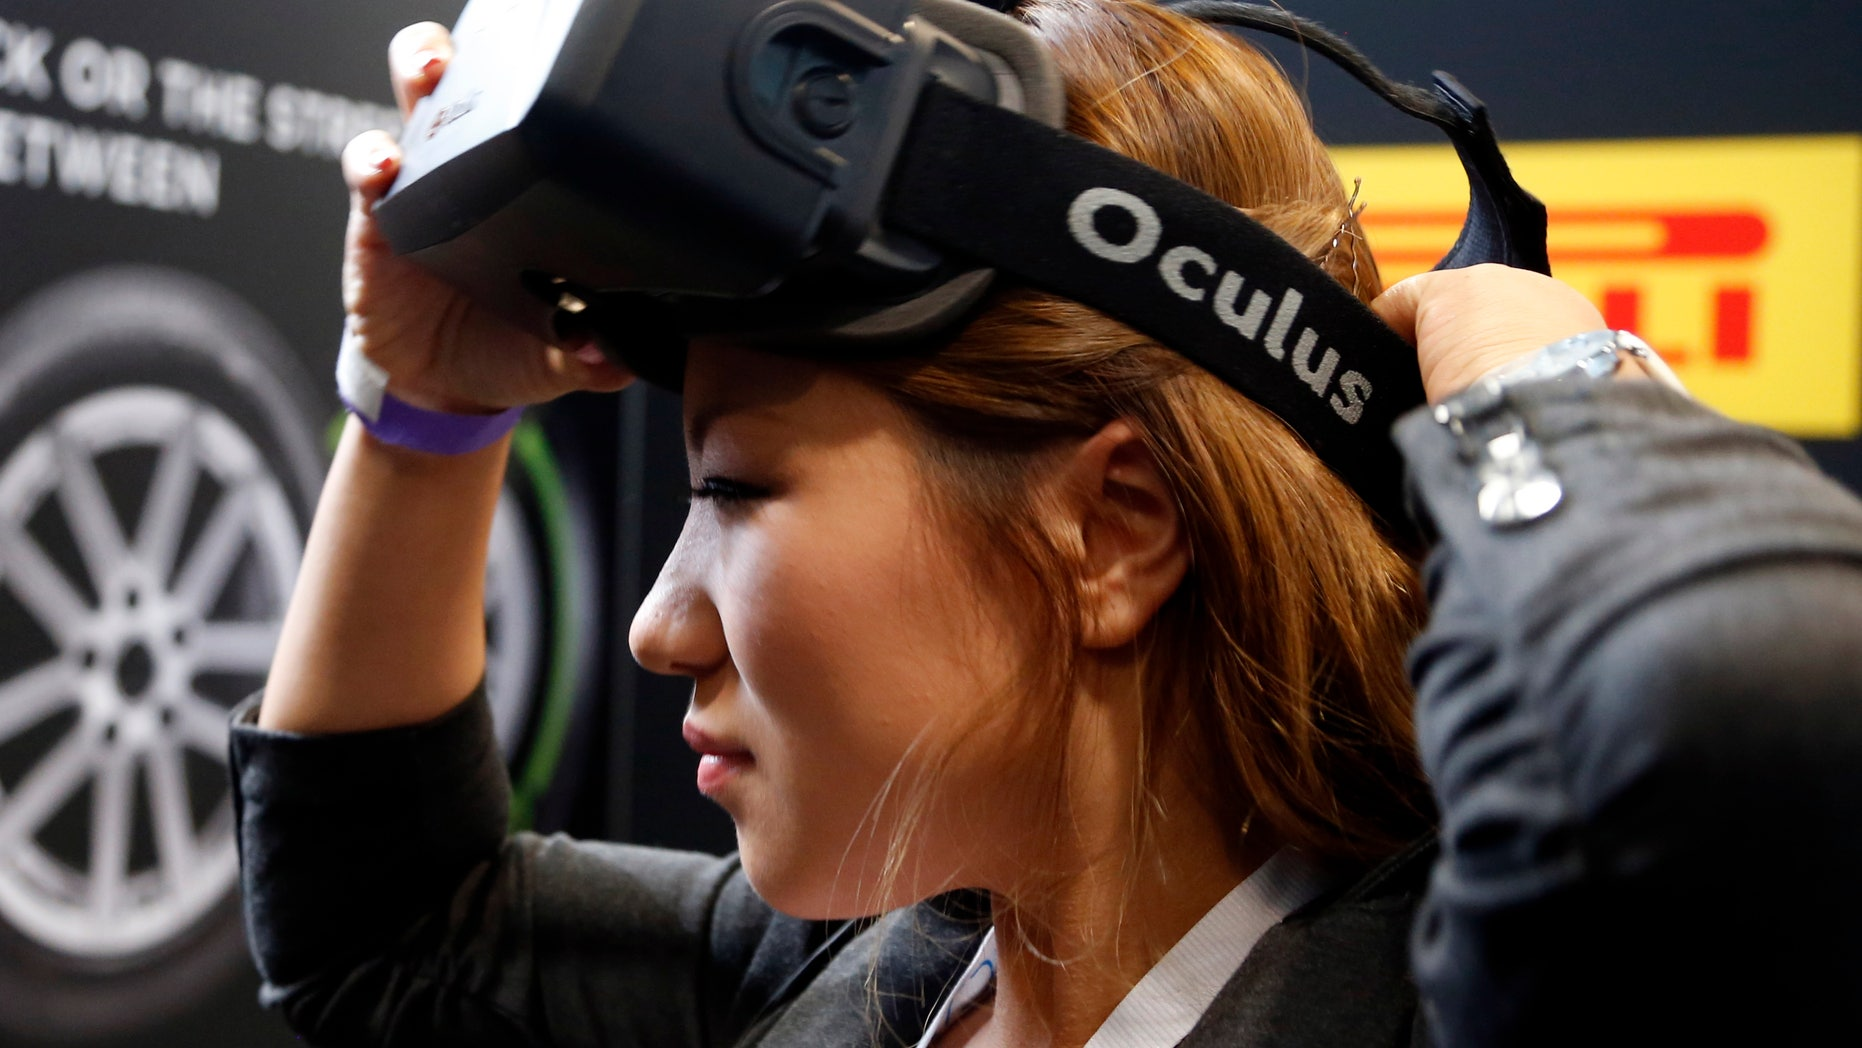 A woman puts on an Oculus virtual reality headset during preparations for the 2014 LA Auto Show in Los Angeles, California November 18, 2014. REUTERS/Lucy Nicholson